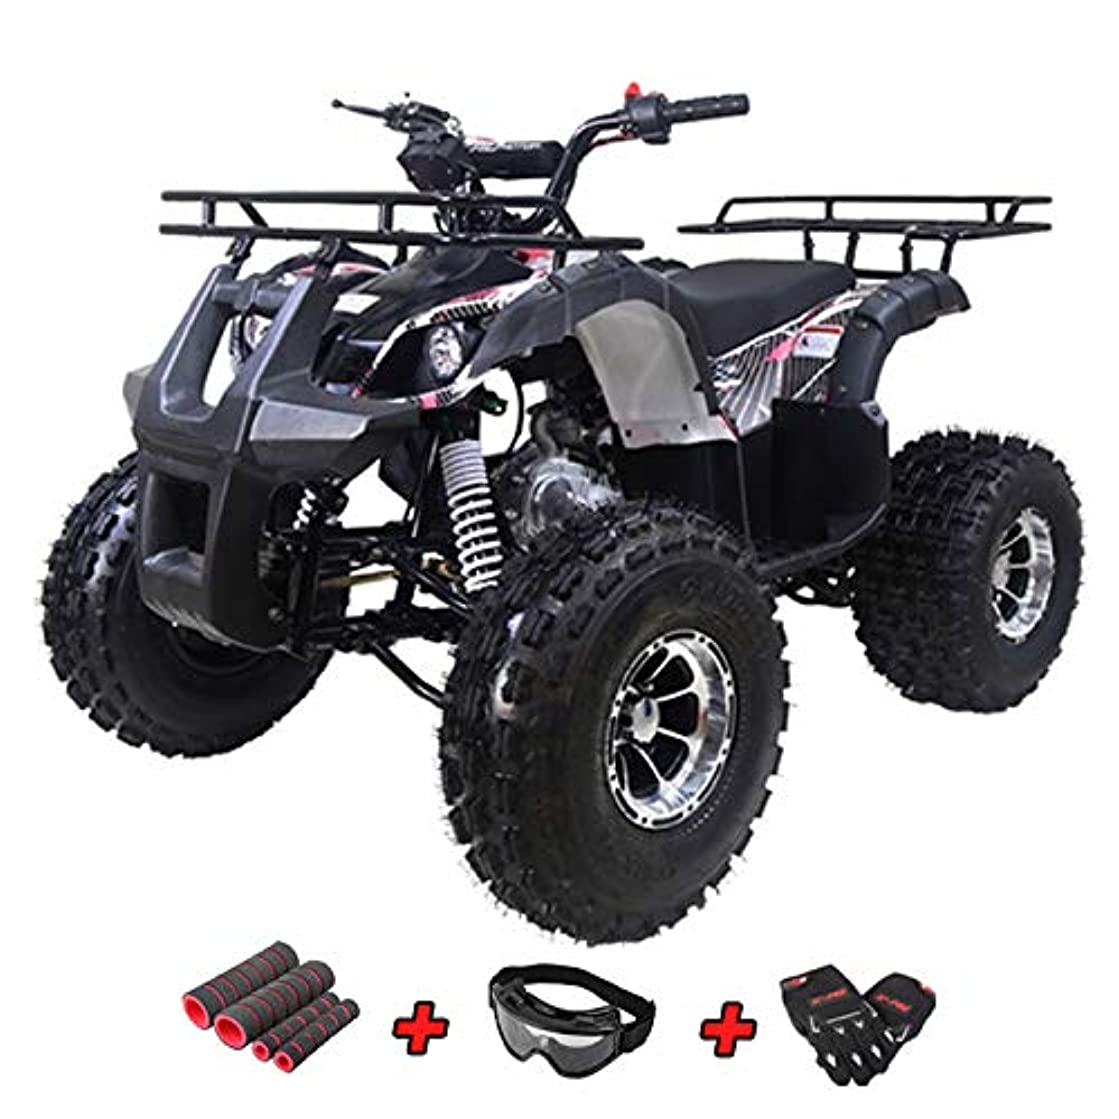 X-Pro 125cc ATV Quad Youth ATV Kids Quad ATVs 4 Wheeler Fully Assembled and Tested with Gloves, Goggle and Handgrip